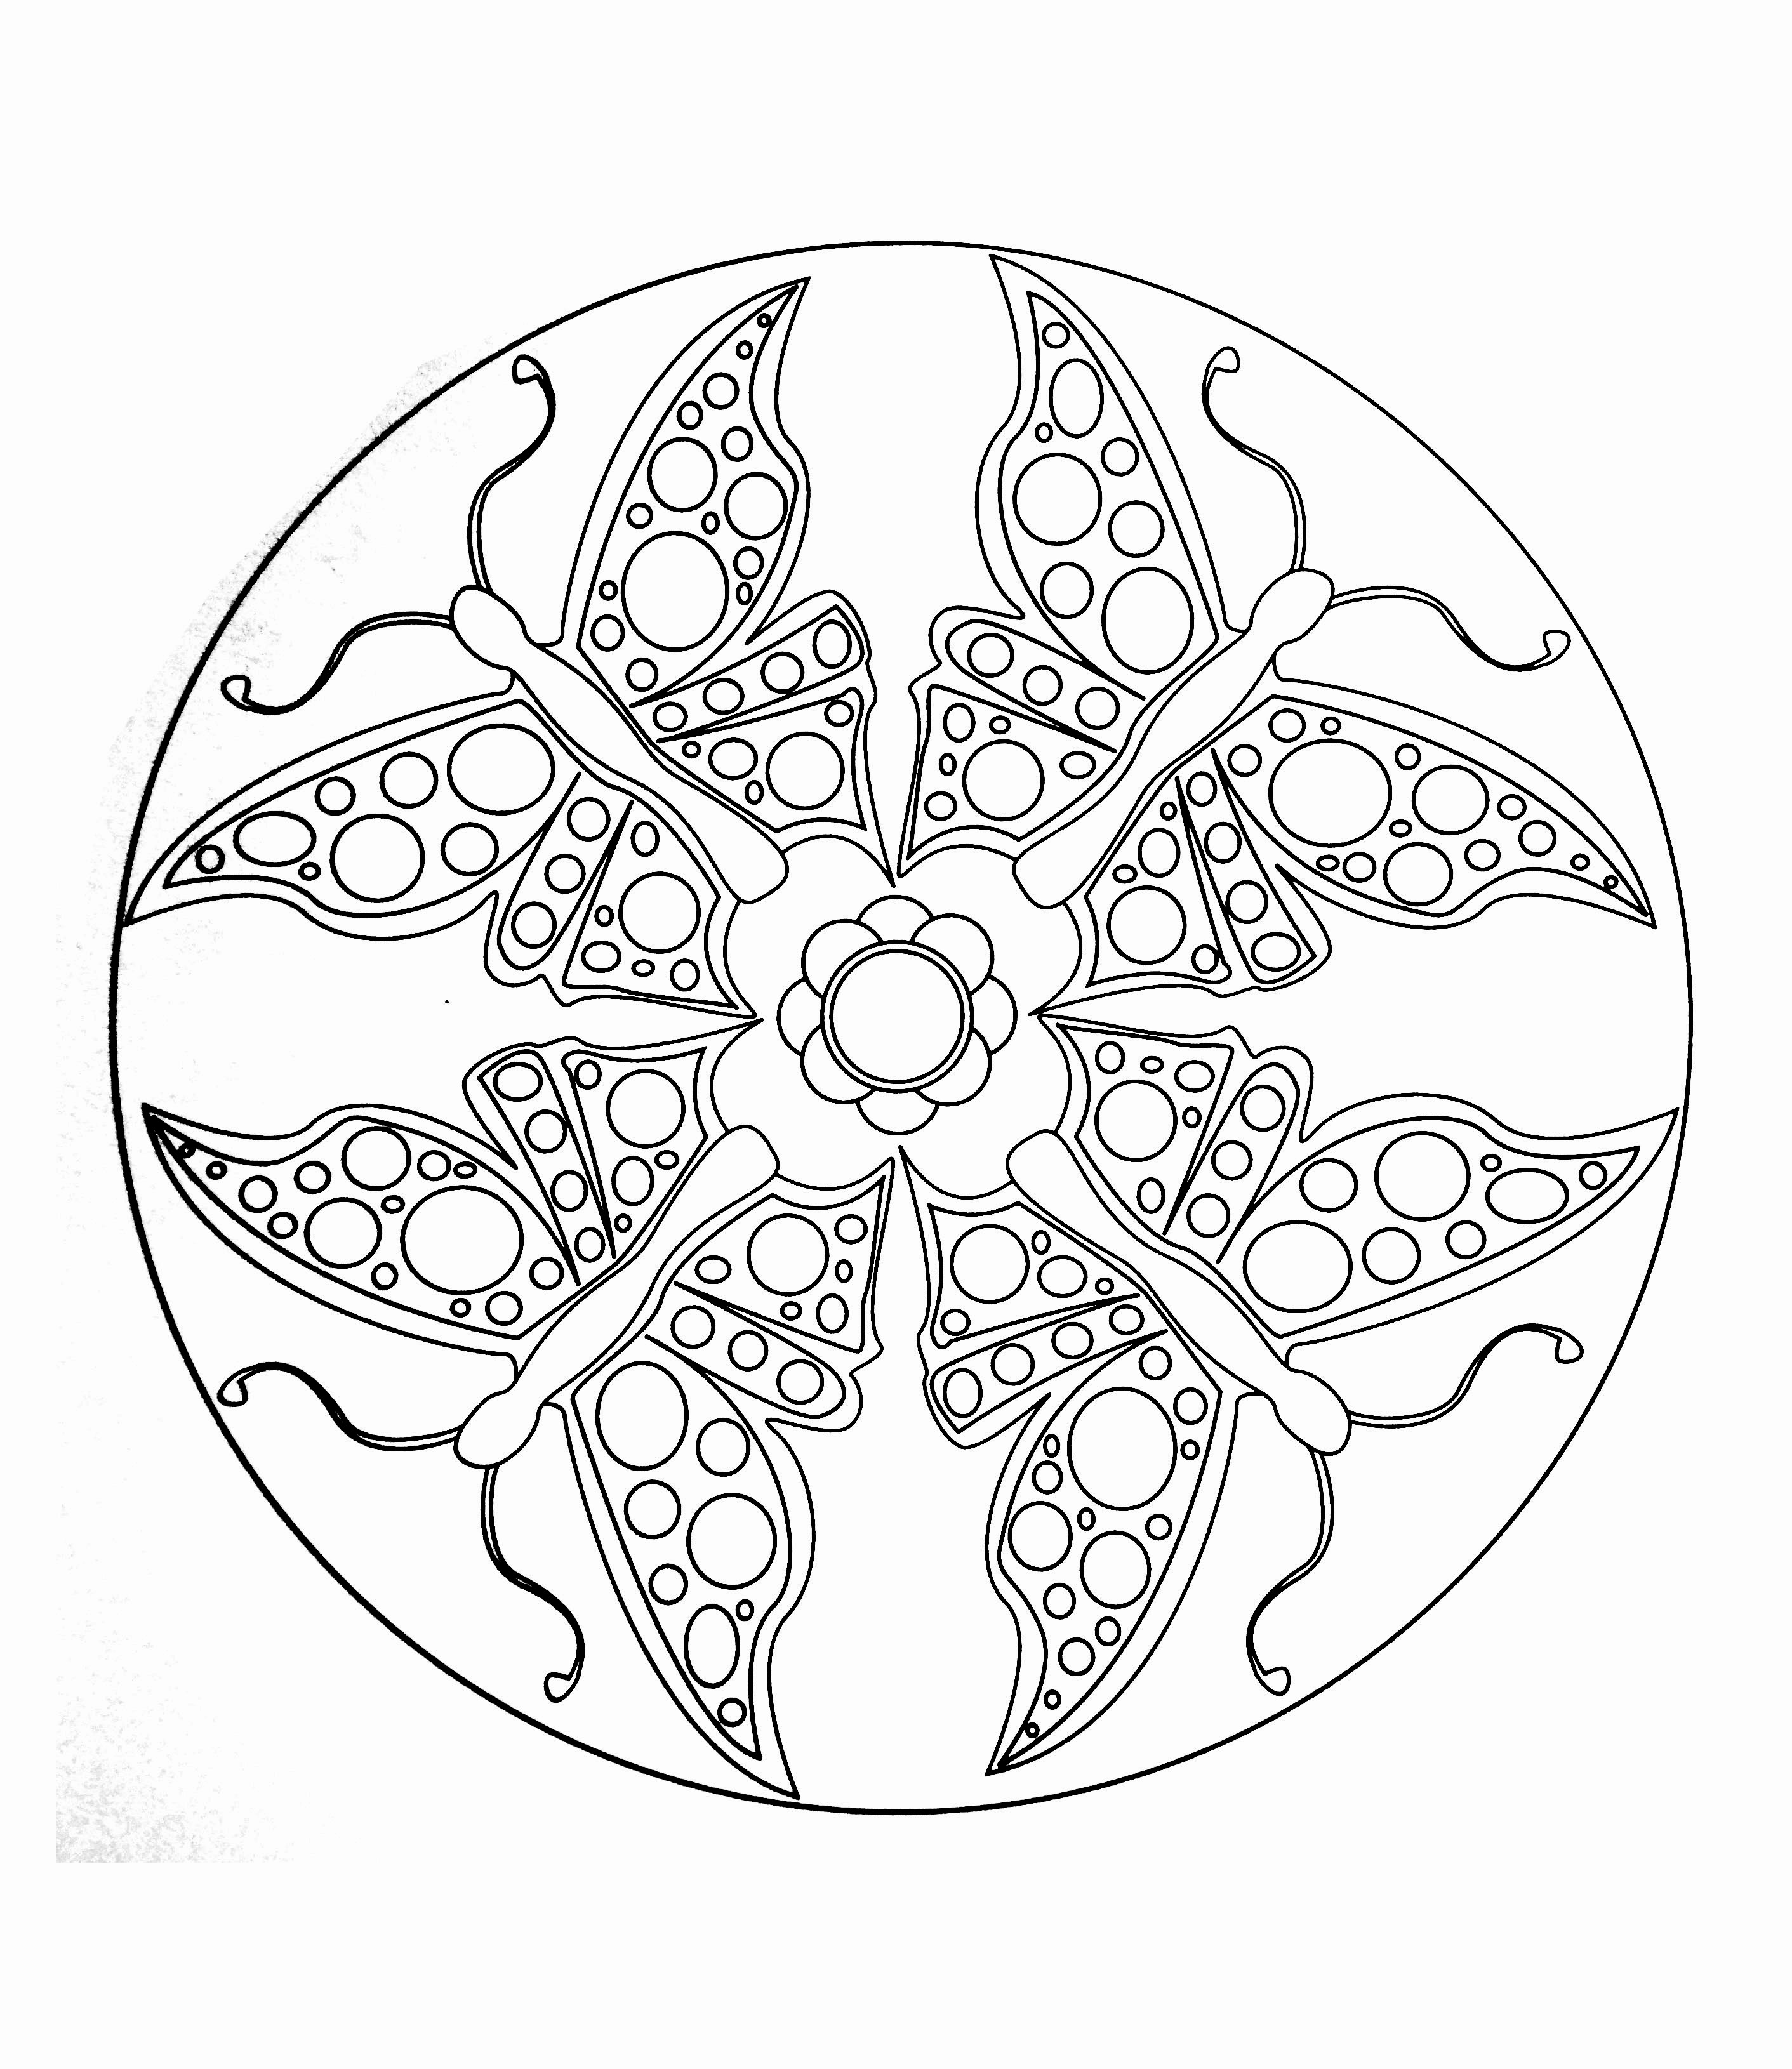 image=easy mandala a colorier facile enfant (4) 1